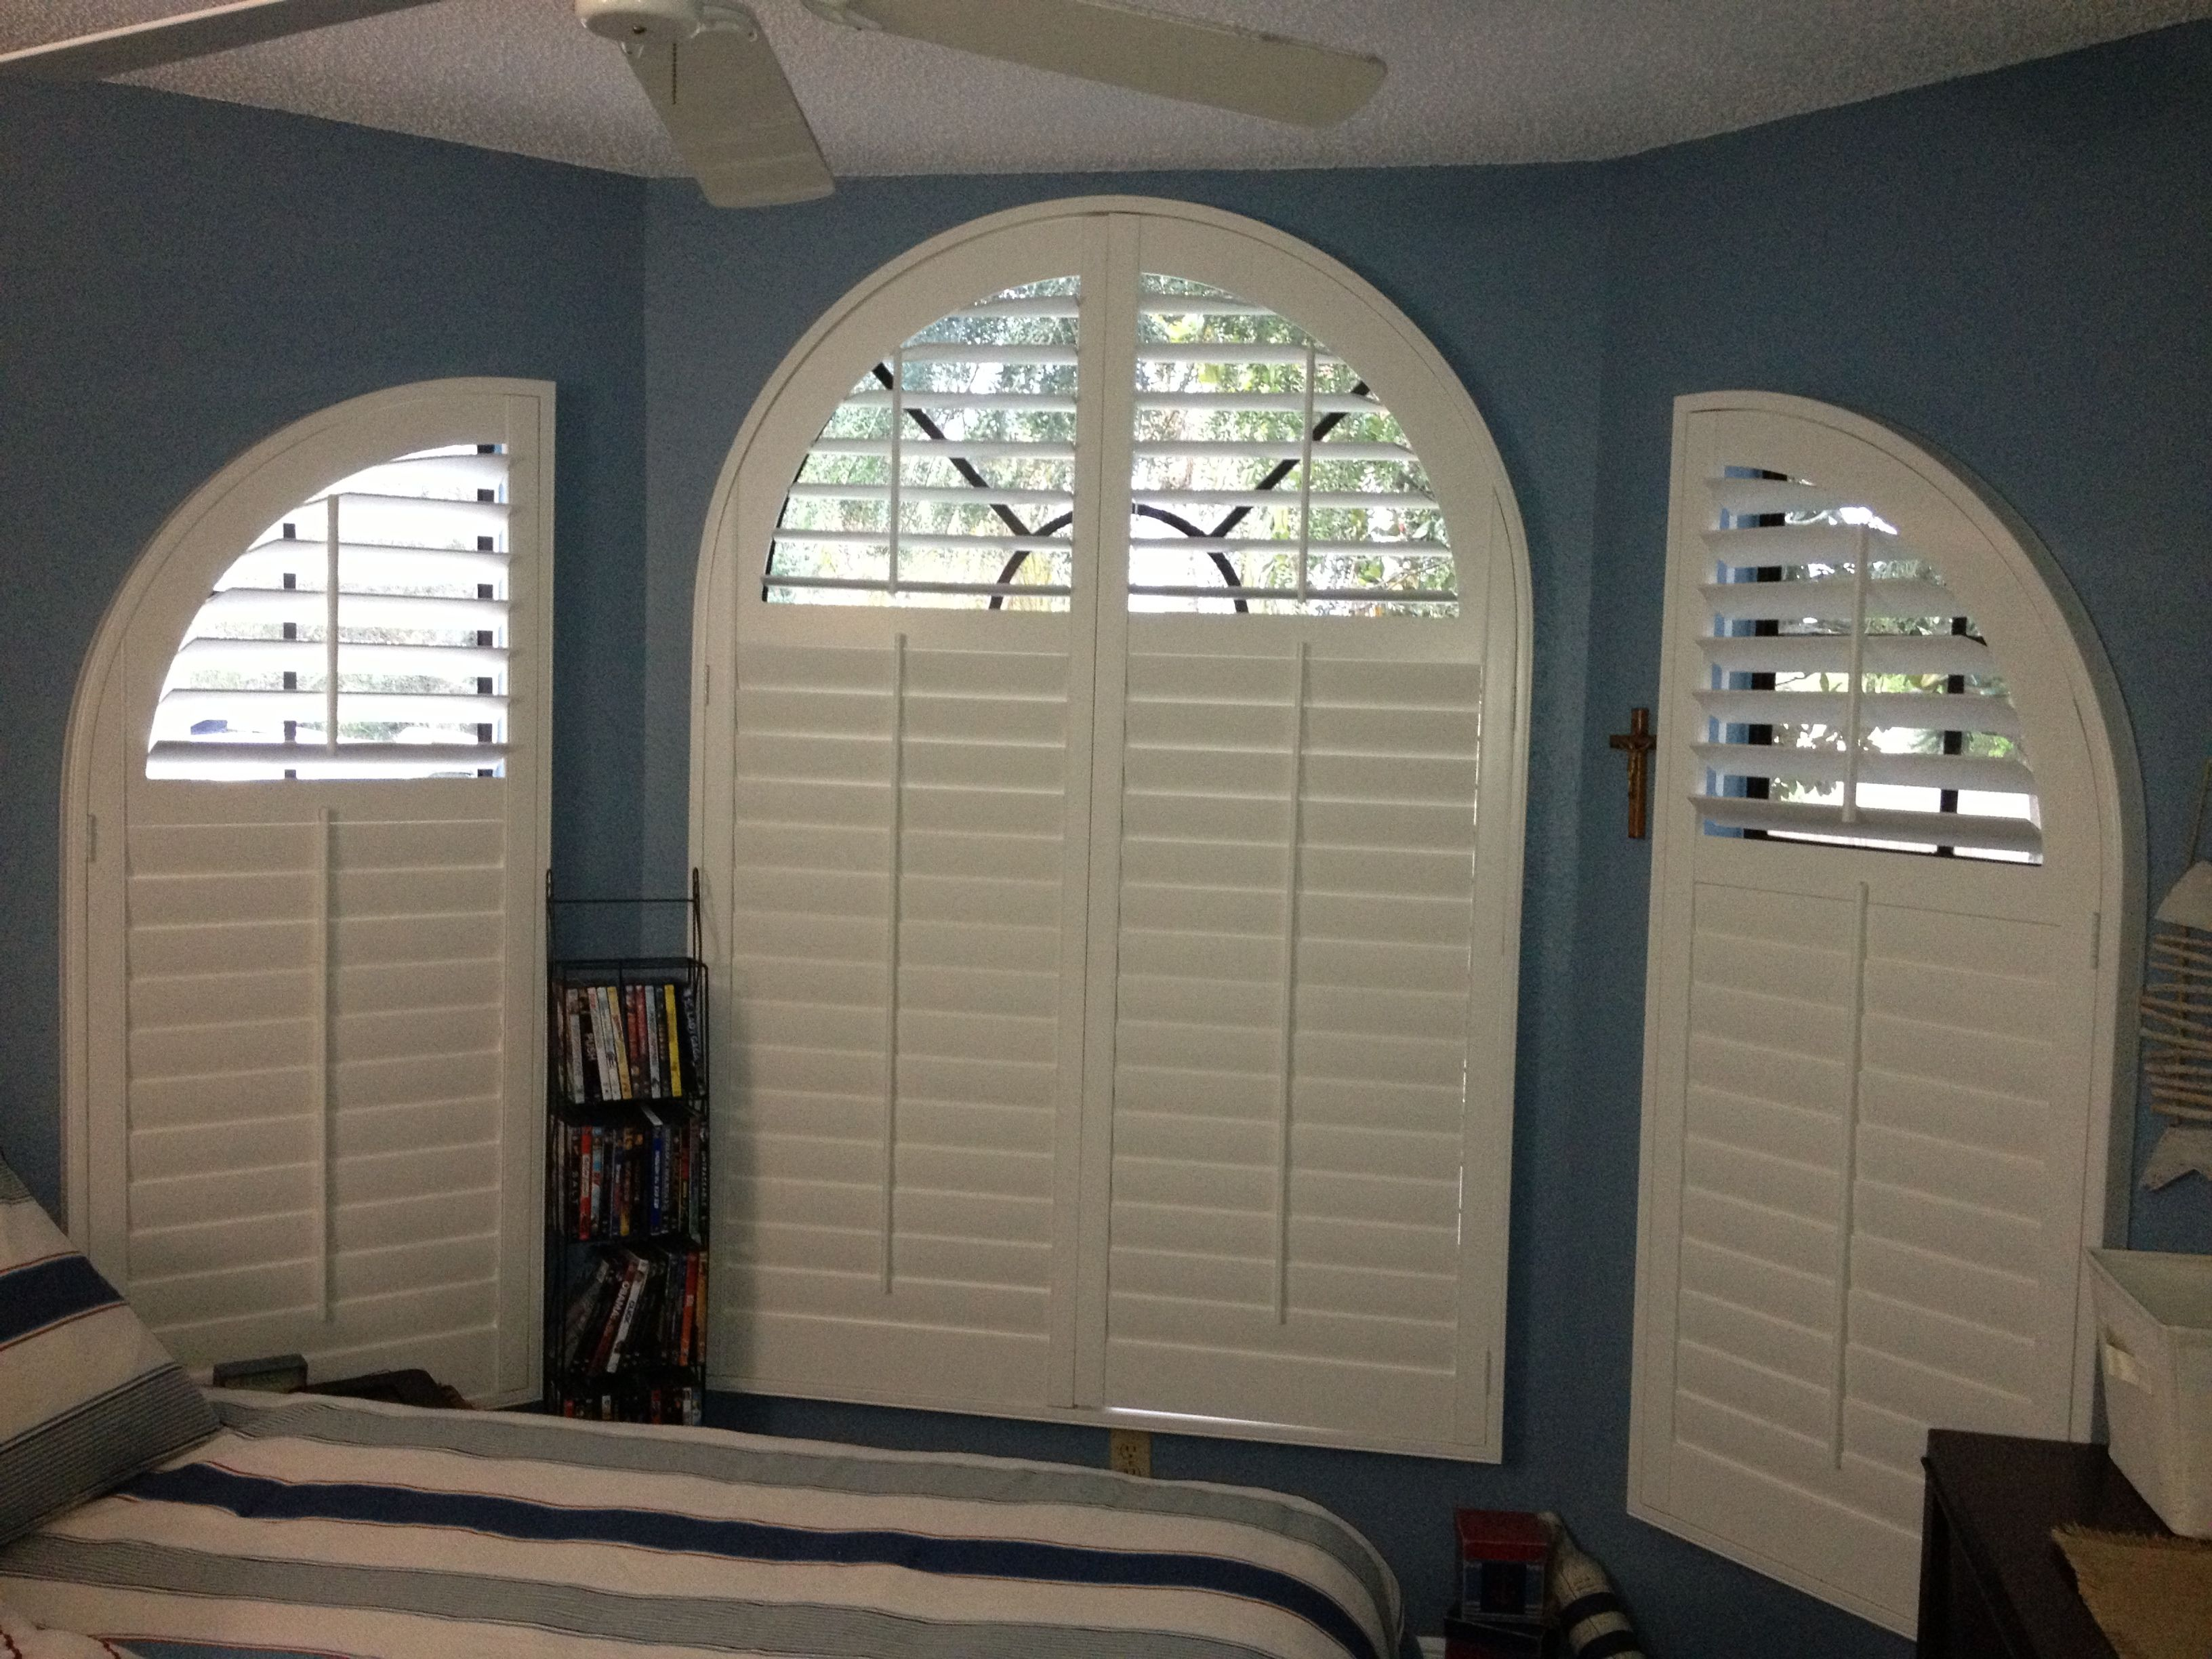 Curved Windows Can Be Covered With Custom Shutters To Fill The